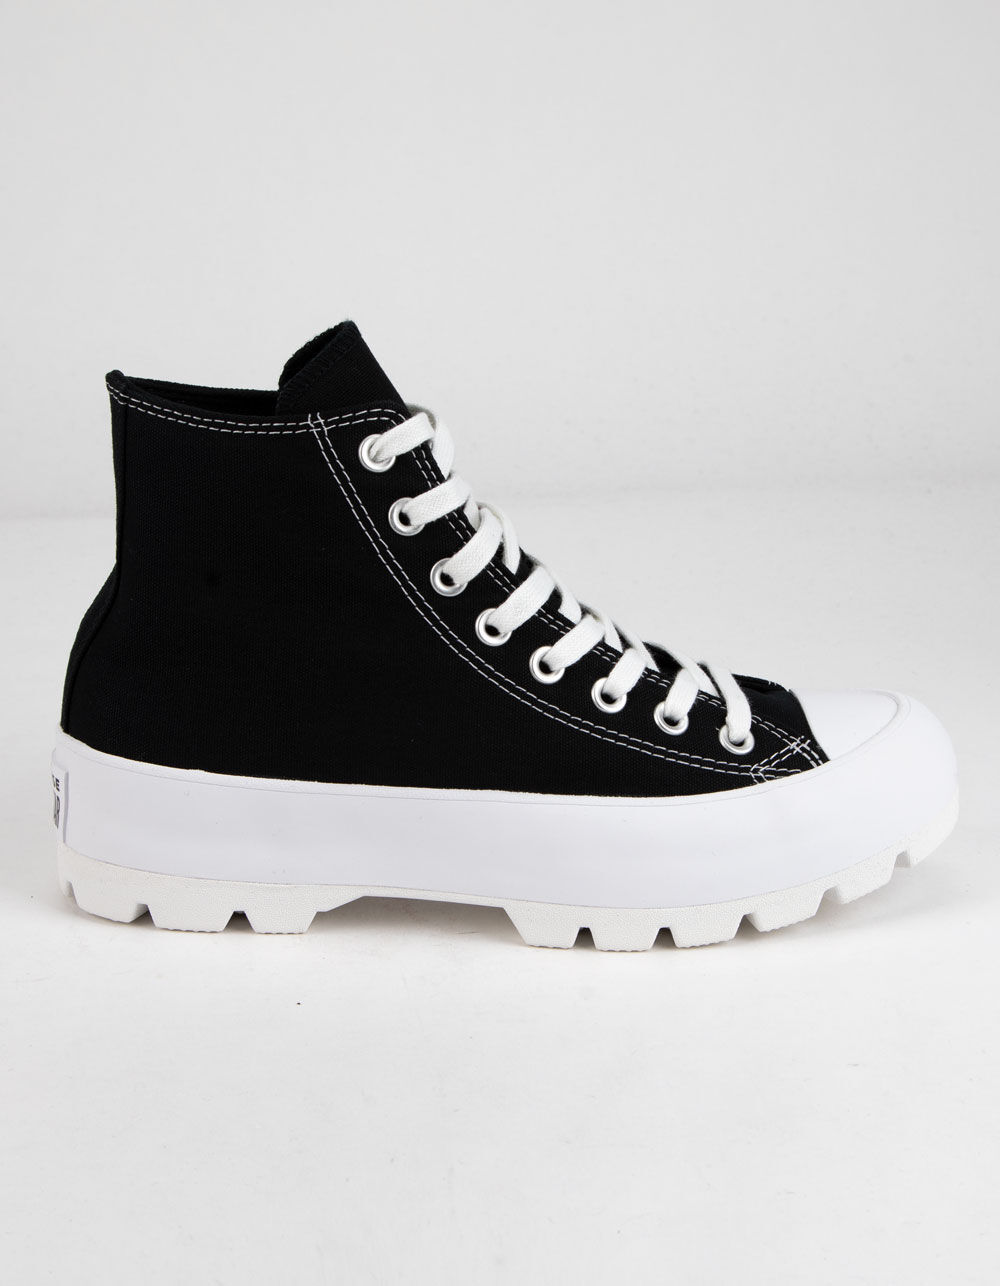 CONVERSE Chuck Taylor All Star Lugged Black and White High Tops